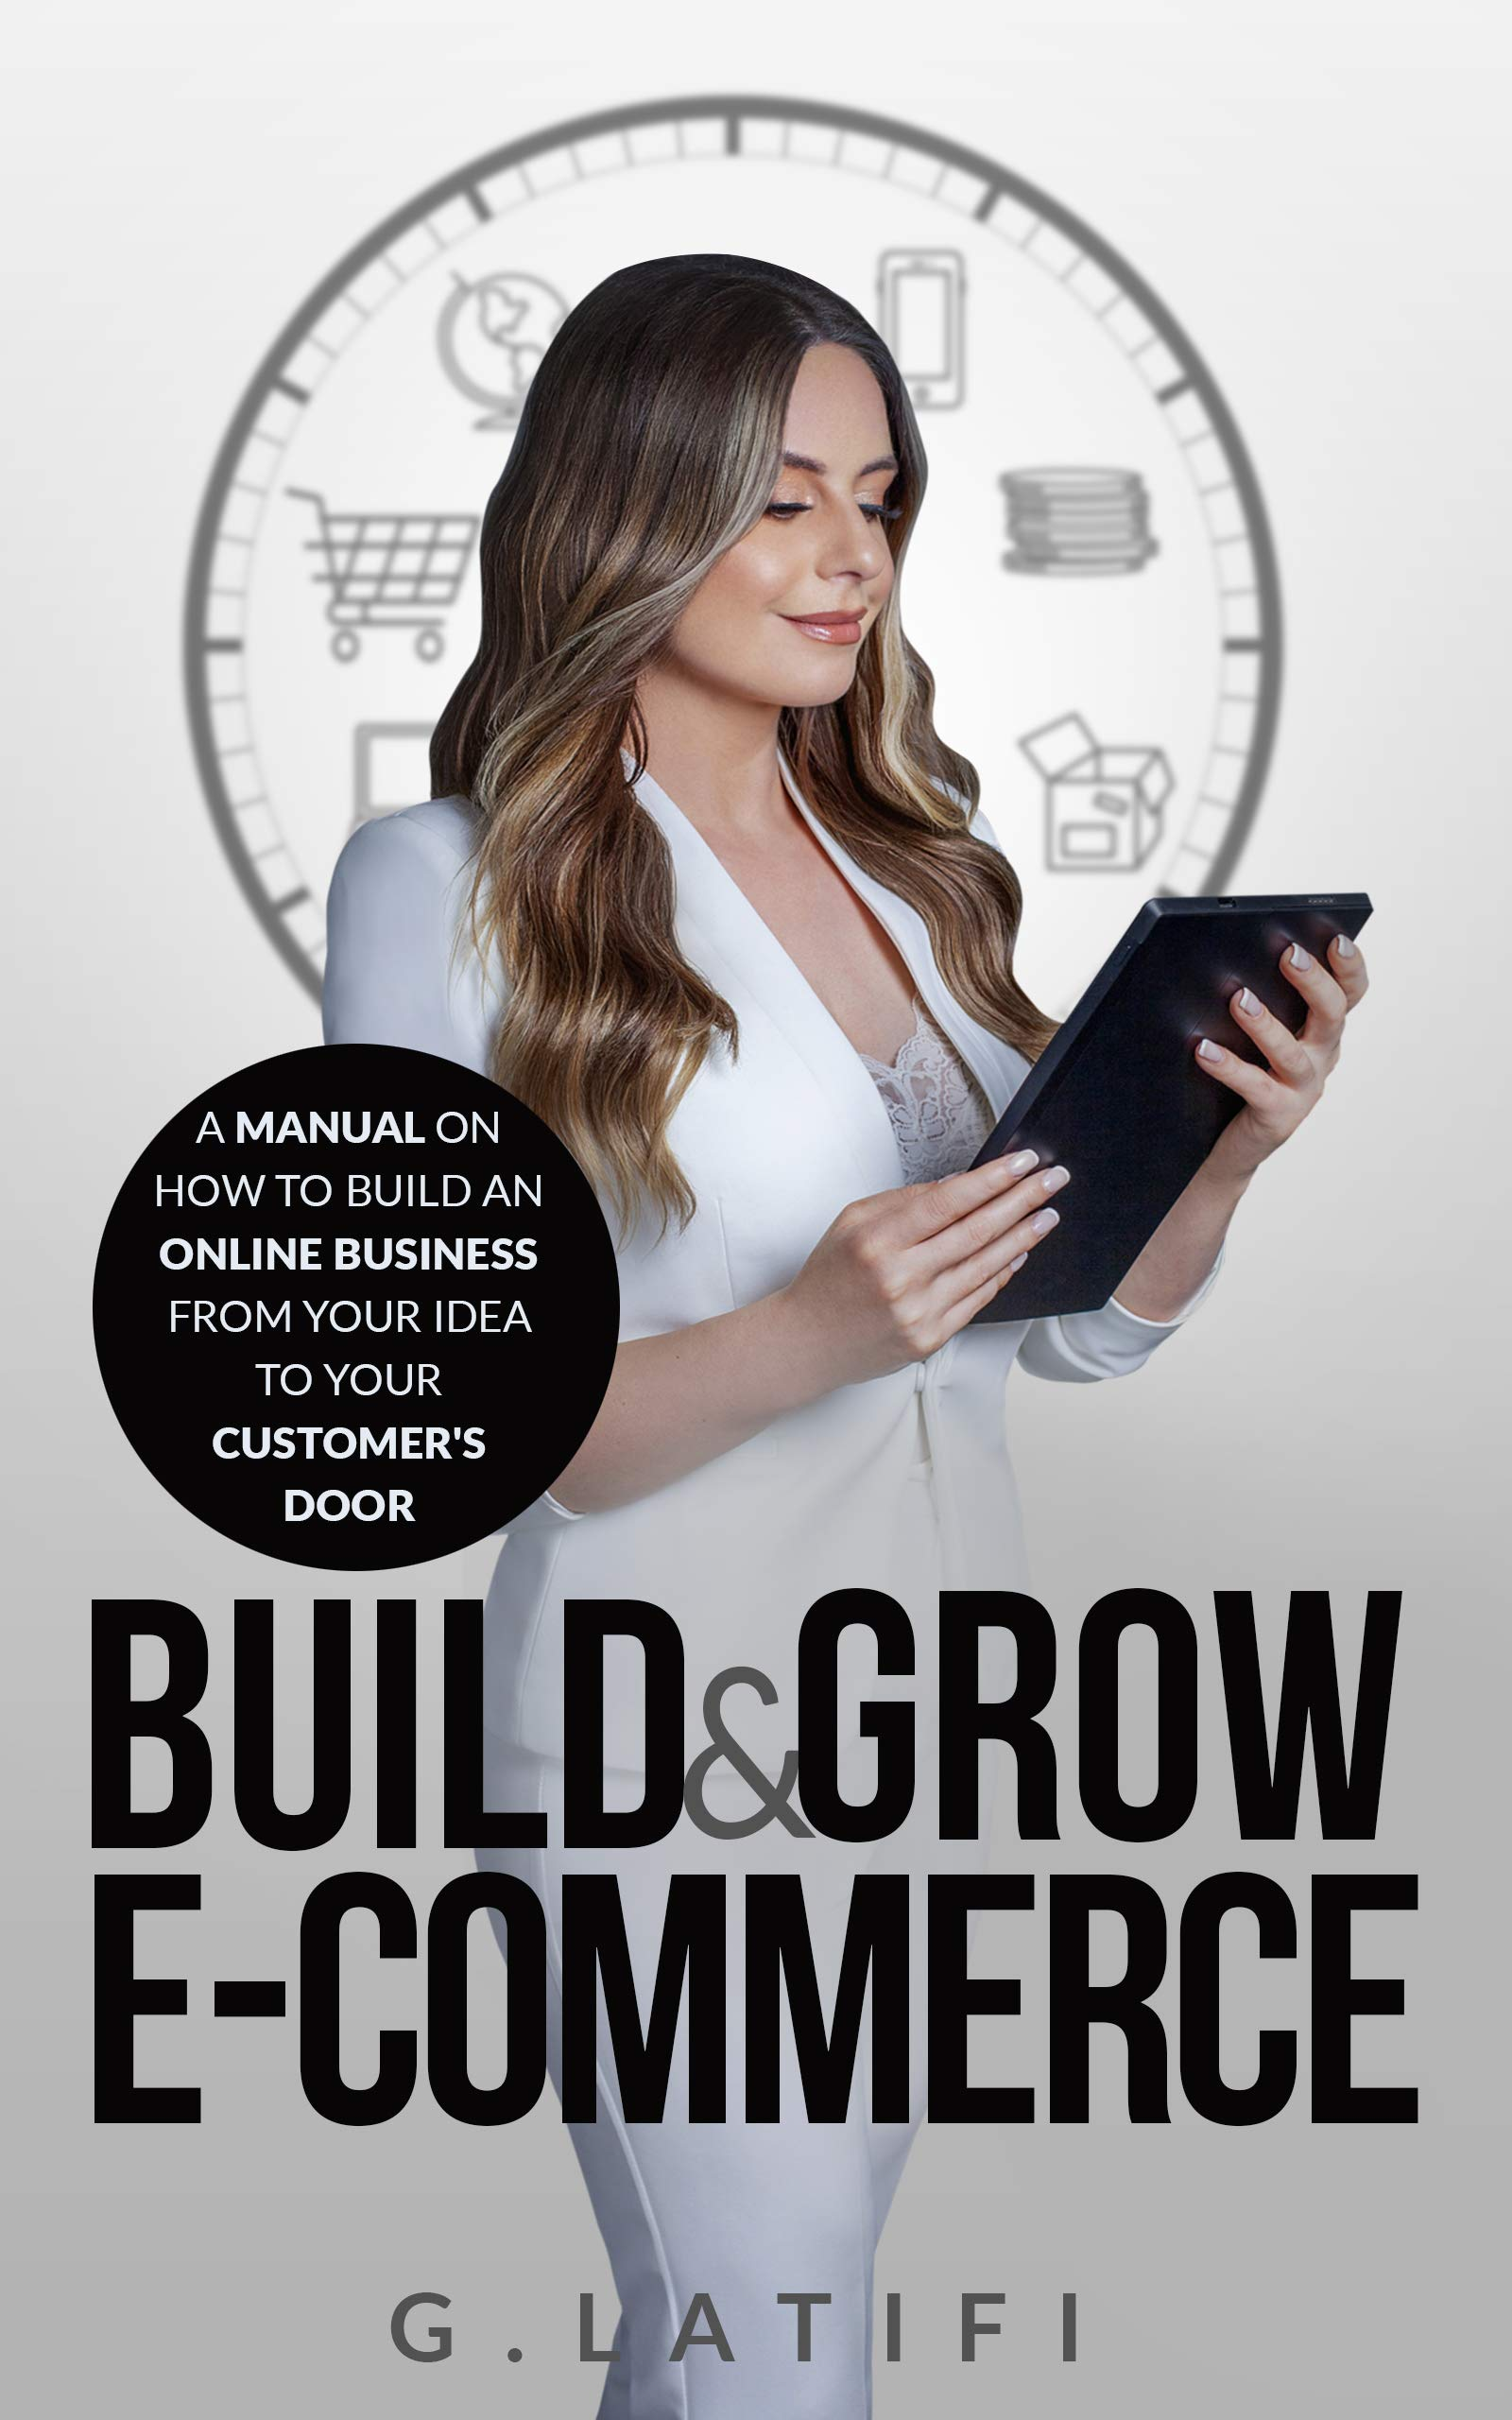 Build & Grow E-Commerce: Product Research, Supplier Research, Branding, Step-by-Step Guide With Top Used Technologies to Build Your Online Store, Amazon, Shopify, Woocommerce, Marketing Strategies